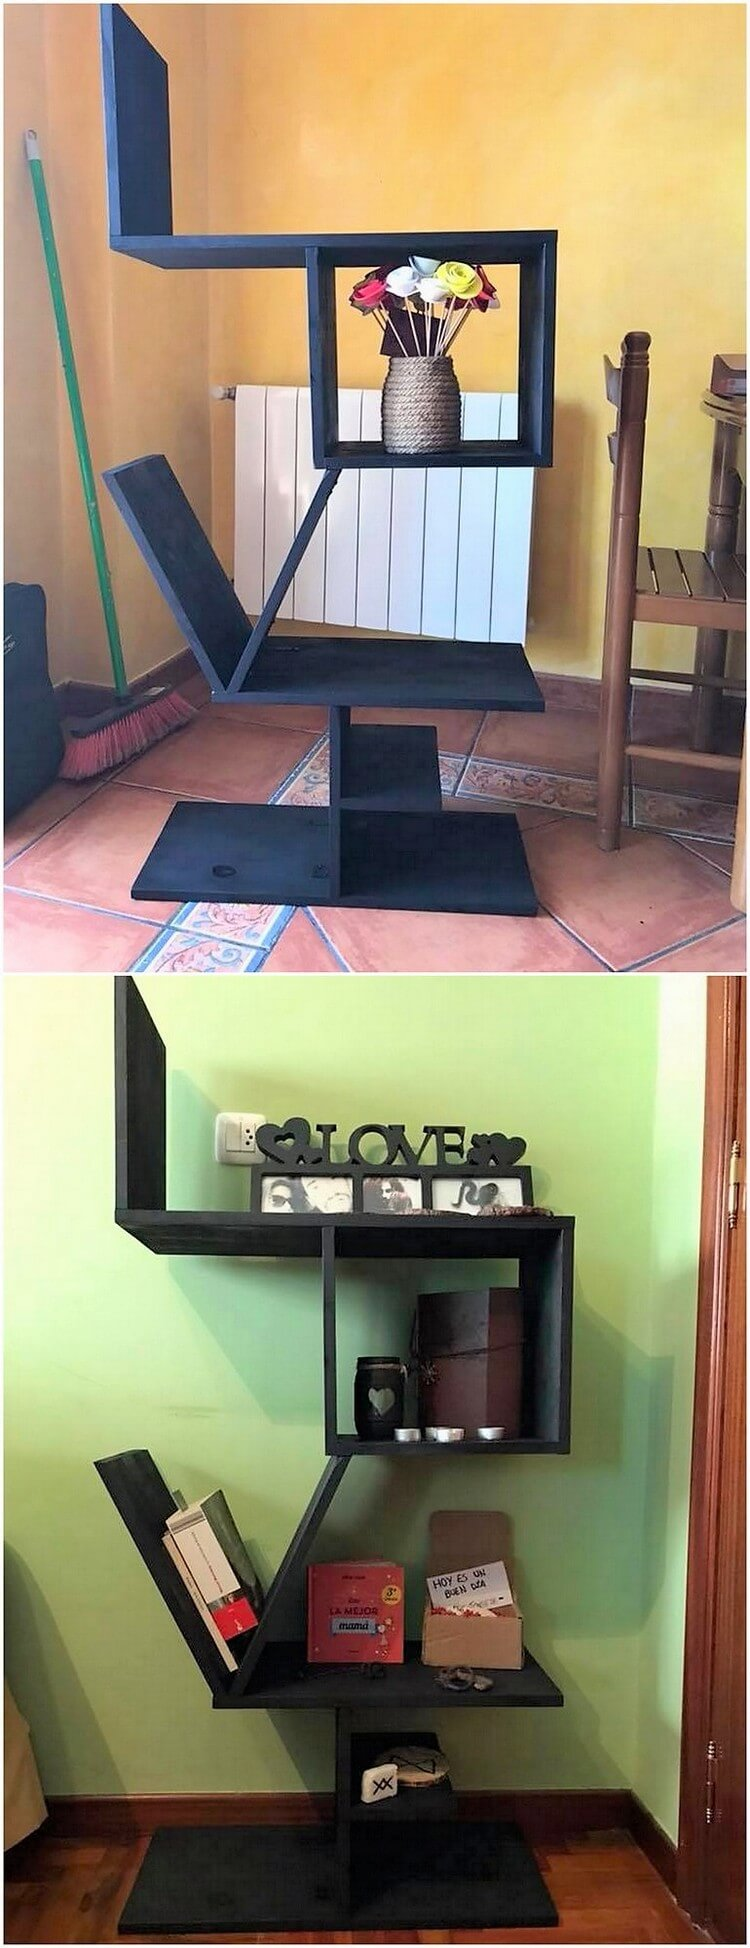 Pallet LOVE Shelves